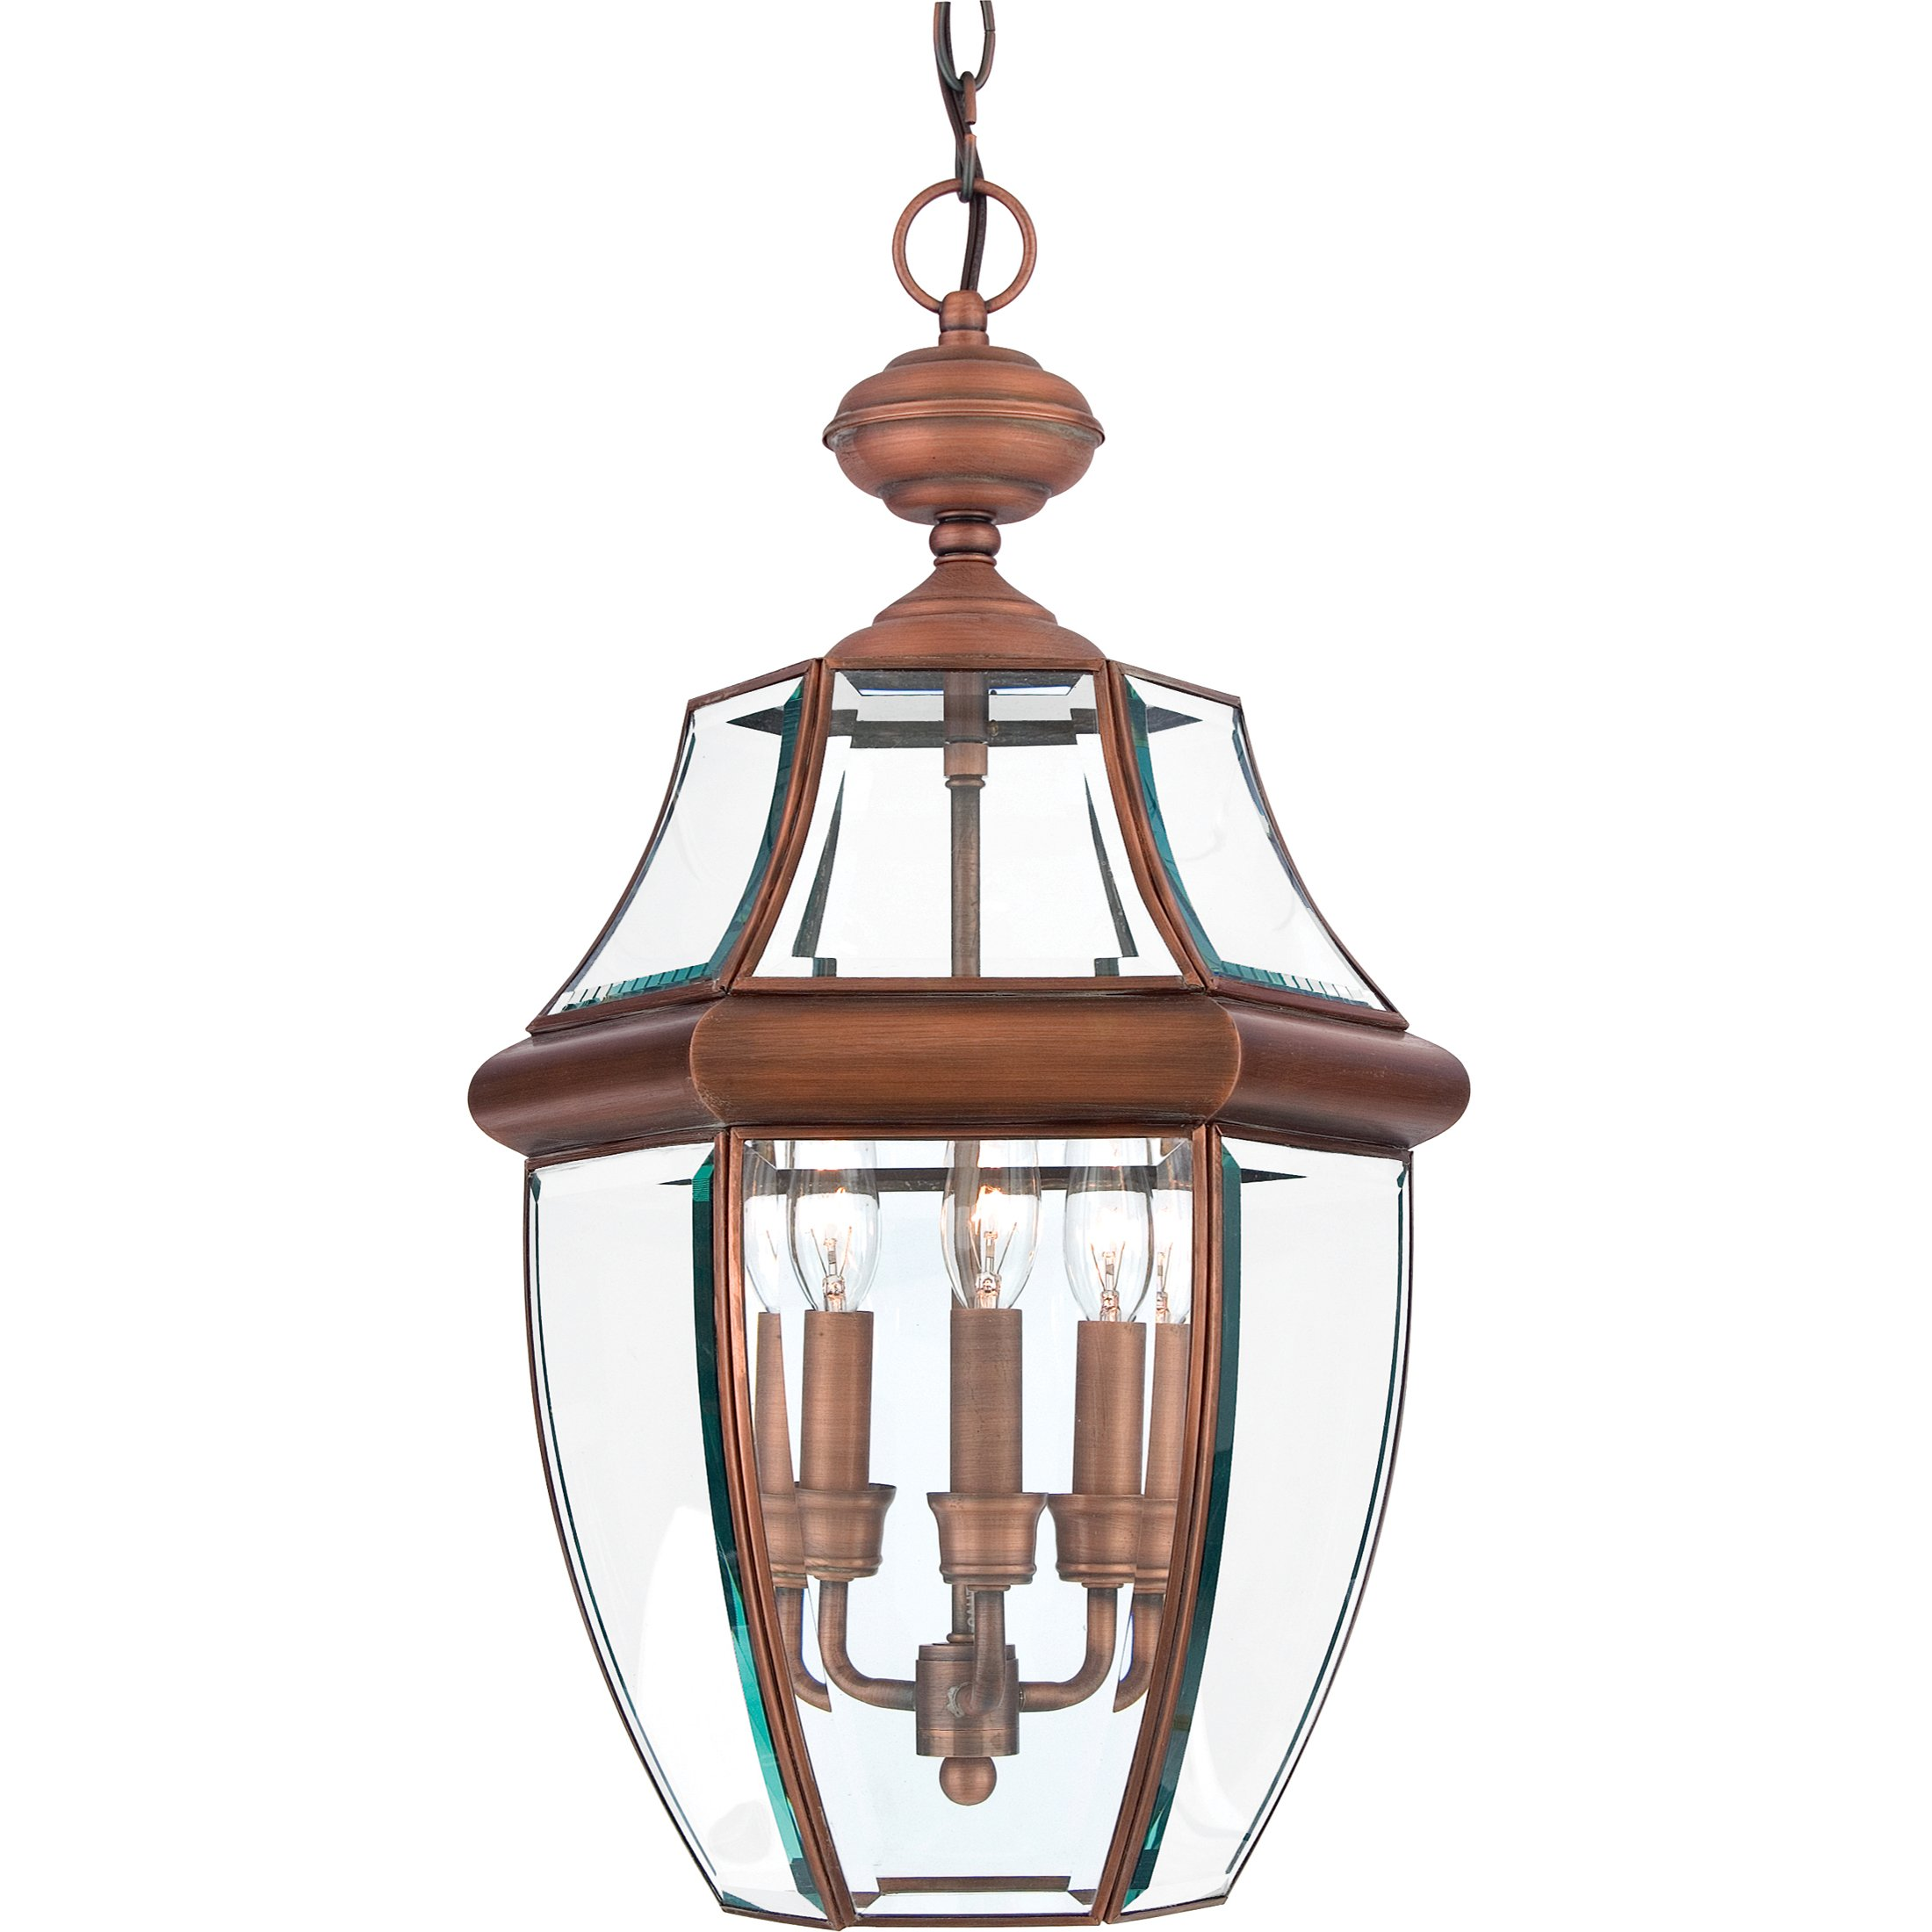 Quoizel NY1179AC Newbury 3-Light Outdoor Hanging Lantern, Aged Copper by Quoizel